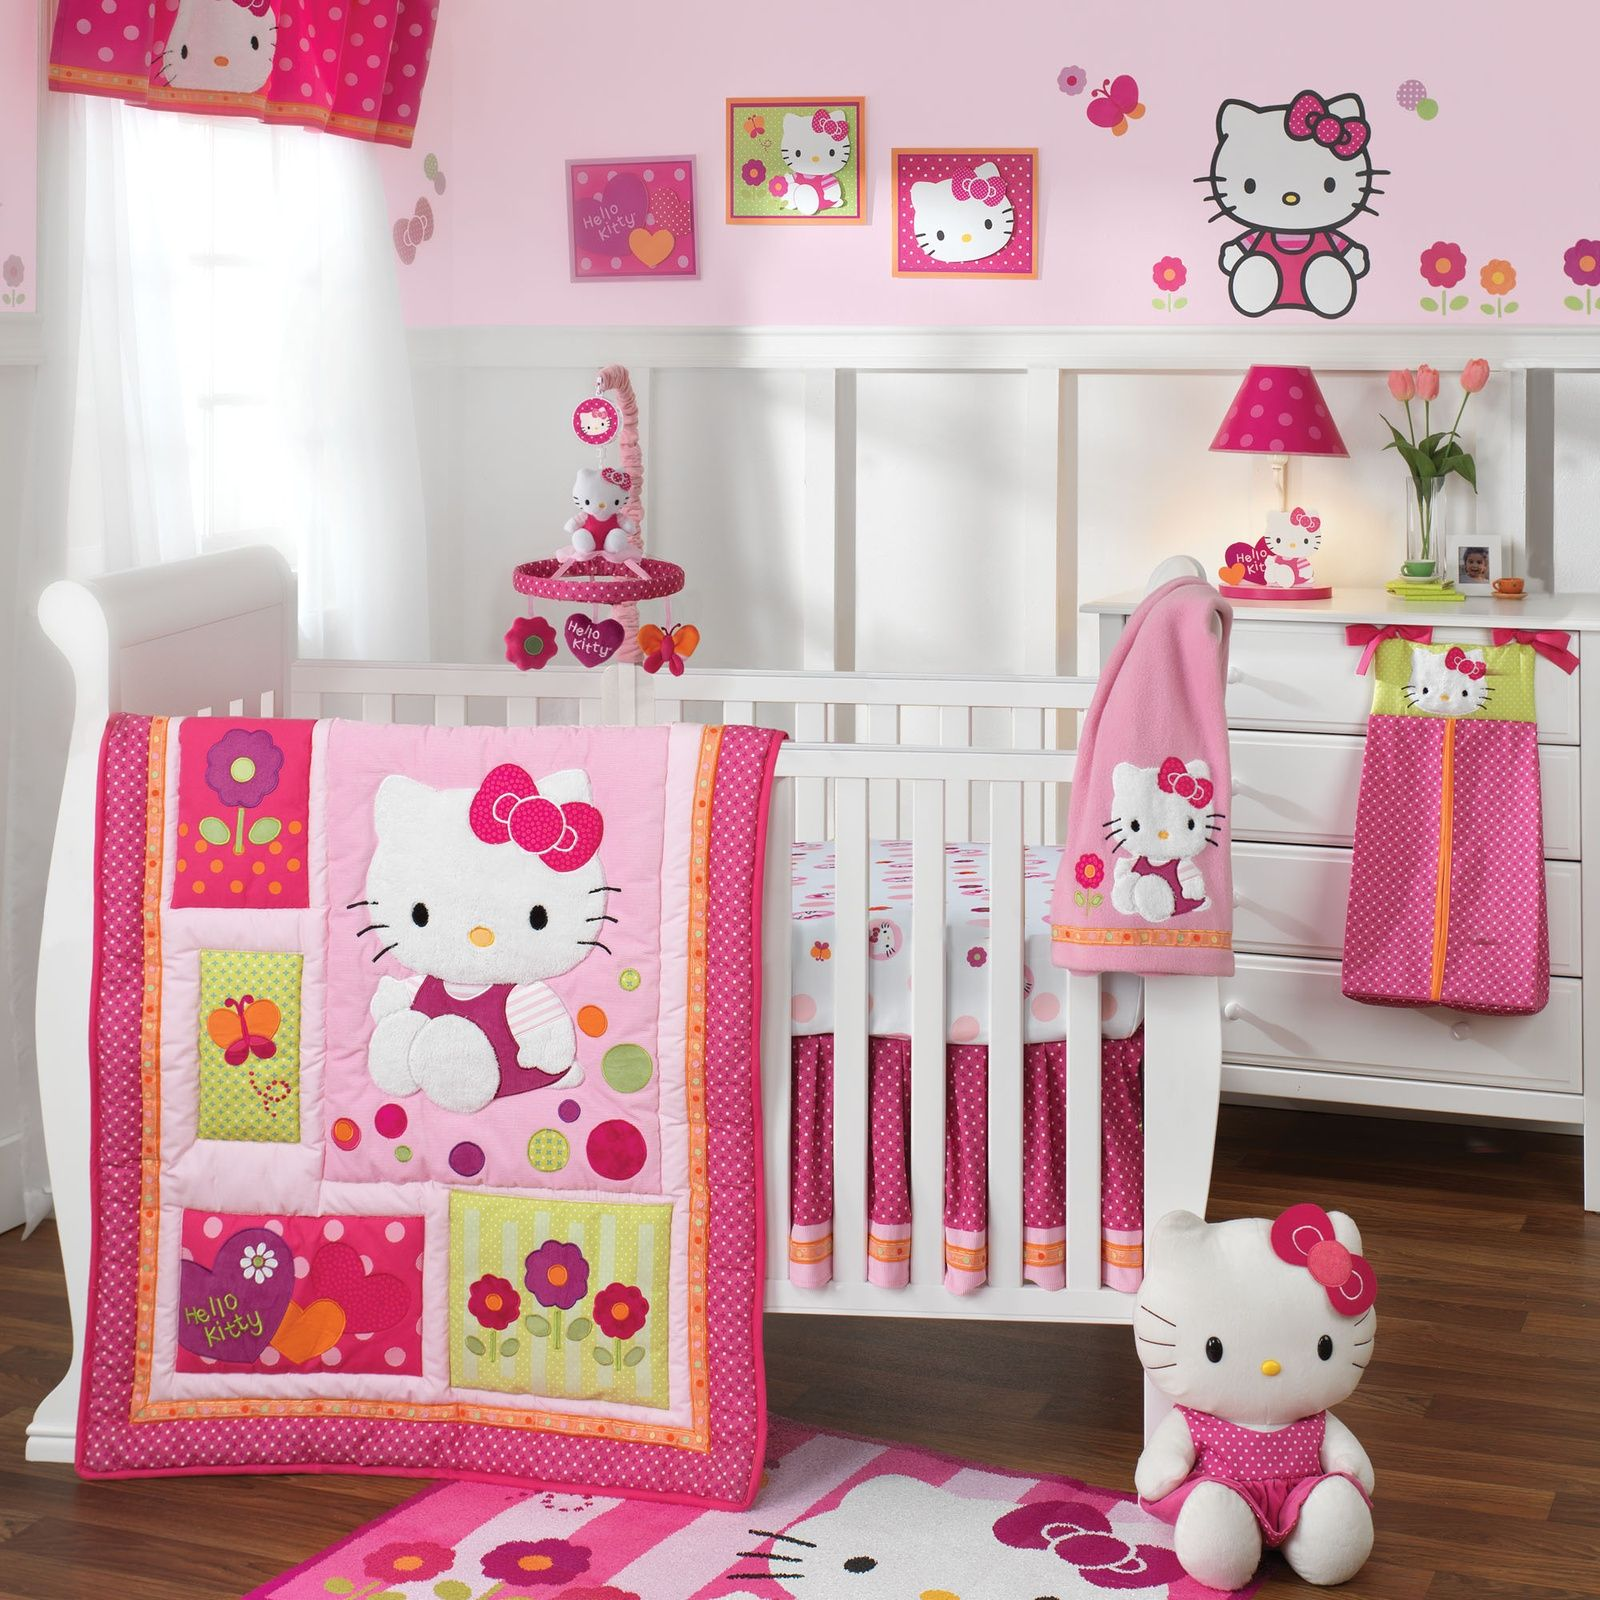 Baby room decorations - Colorful Wall For Kid Bedroom Decorating Ideas With Awesome And Modern Furniture Cute Hello Kitty